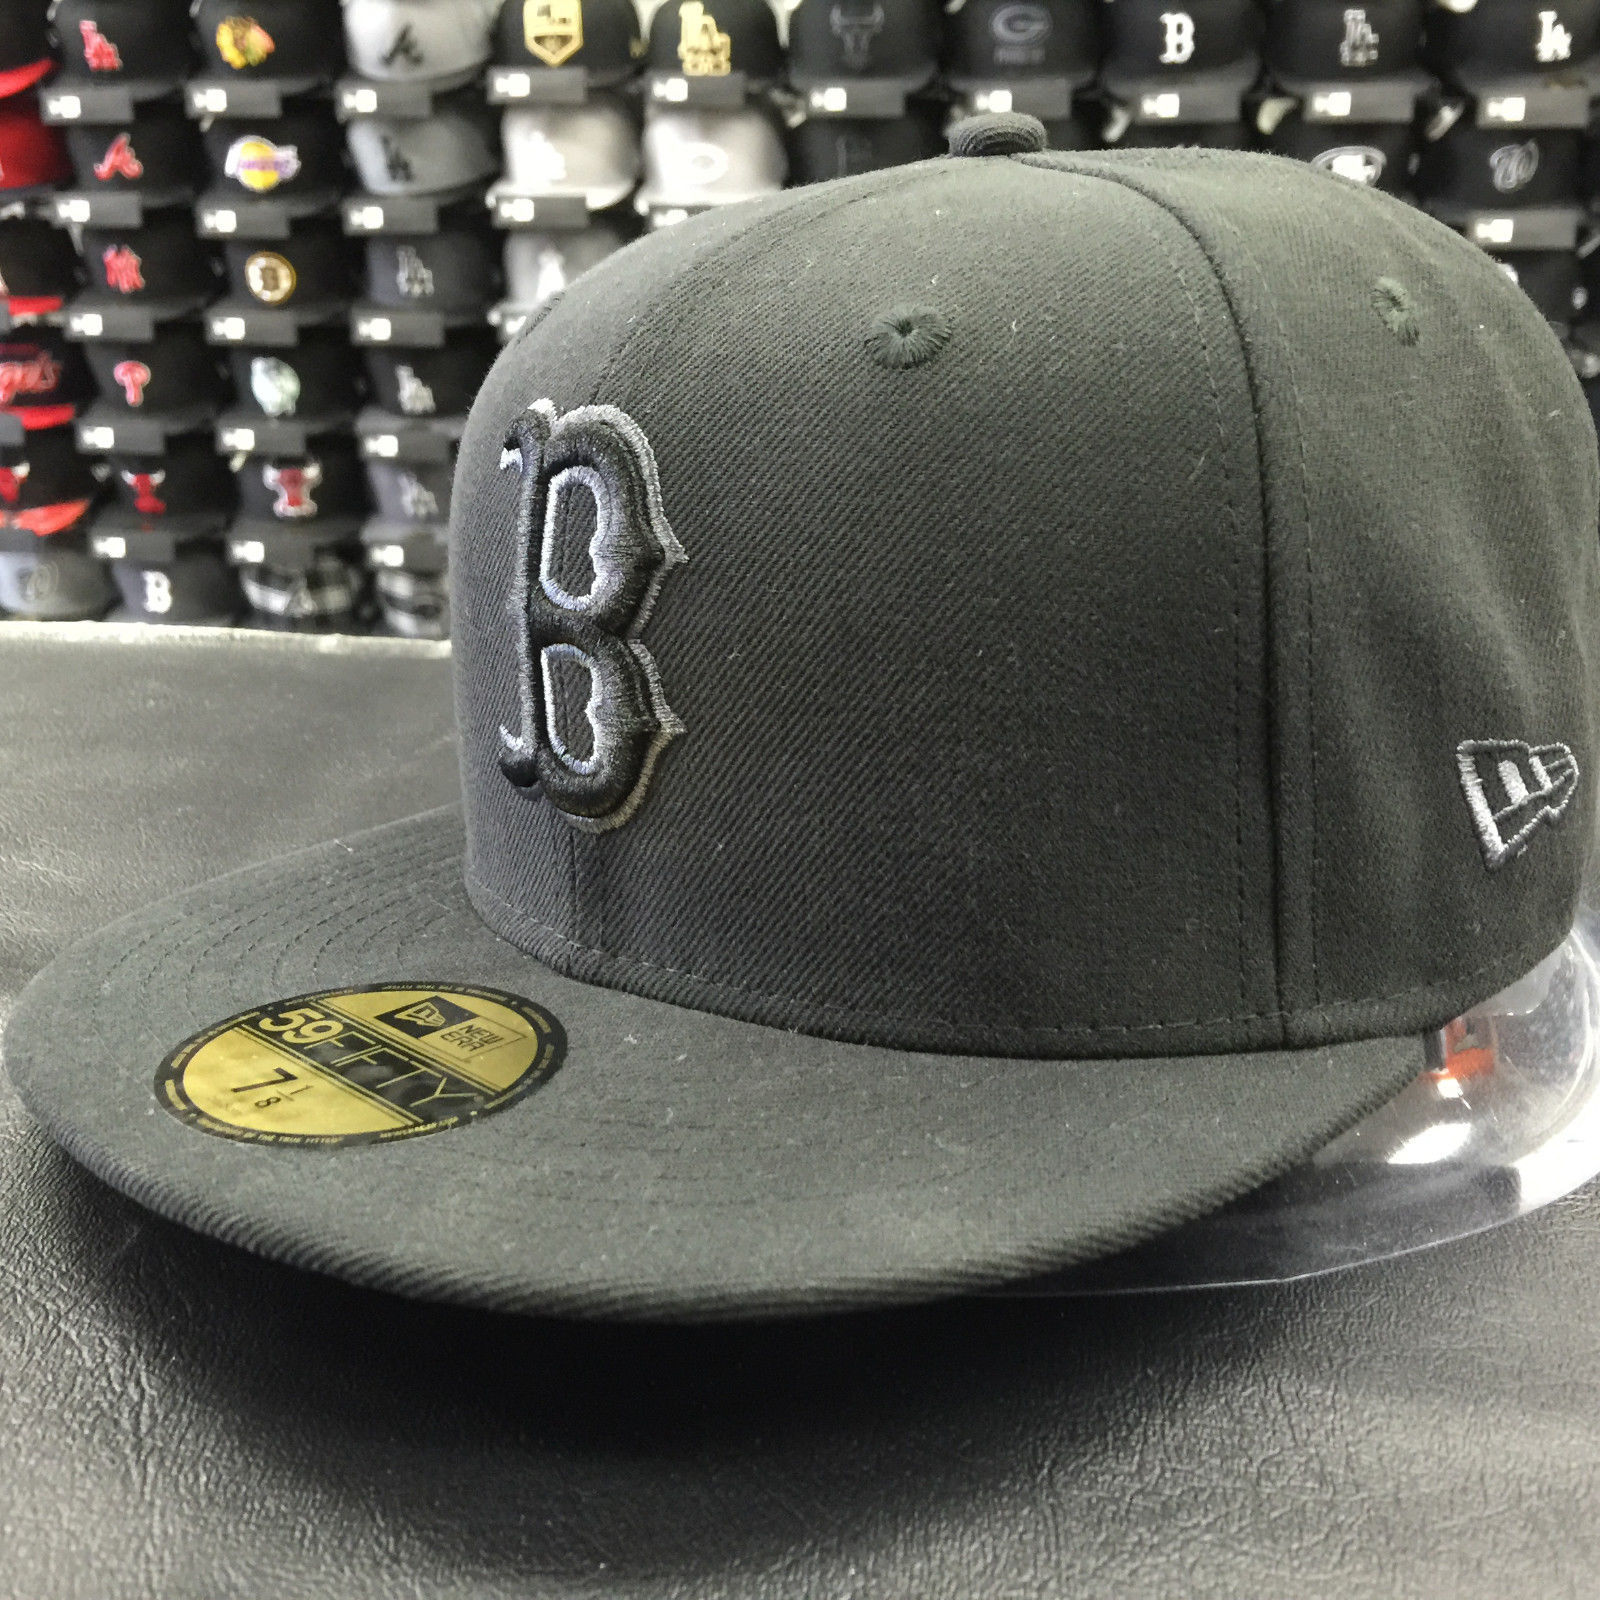 New Era 59Fifty MLB Boston Red Sox Black Gray Basic Fitted Cap